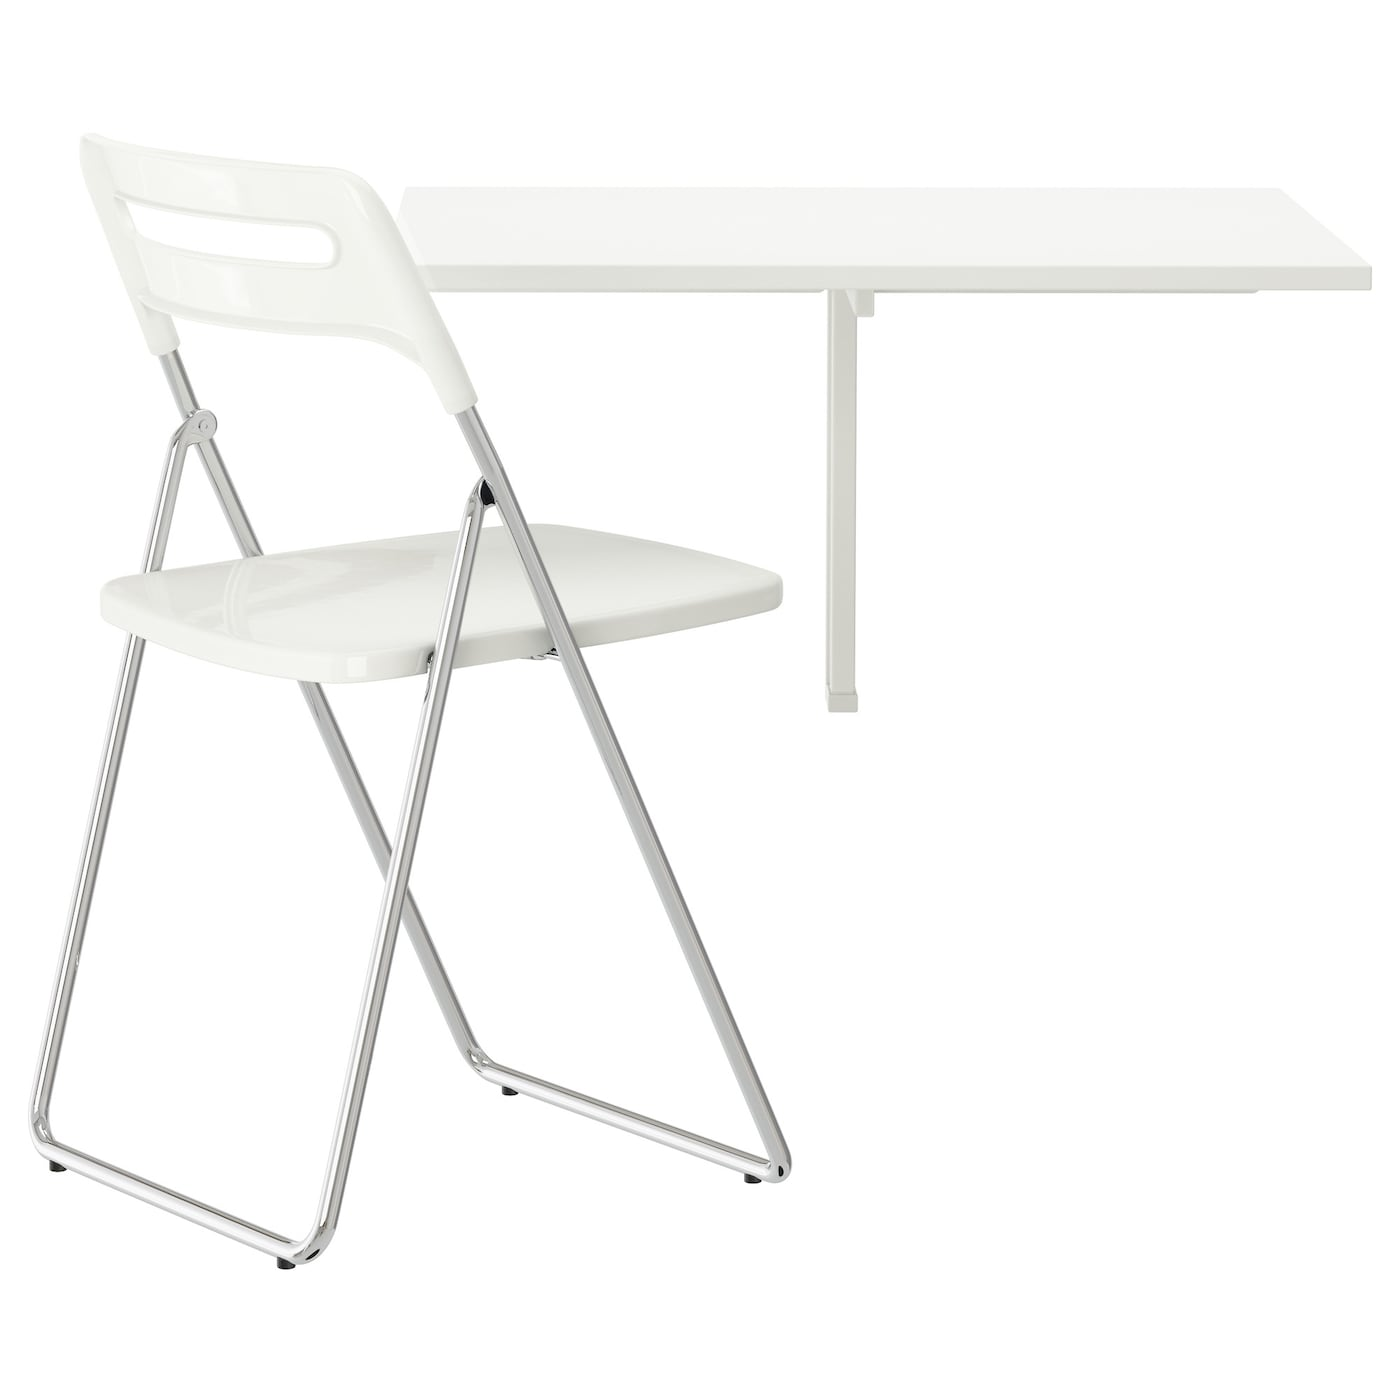 Ikea Nisse Norberg Table And 1 Chair Becomes A Practical Shelf For Small Things When